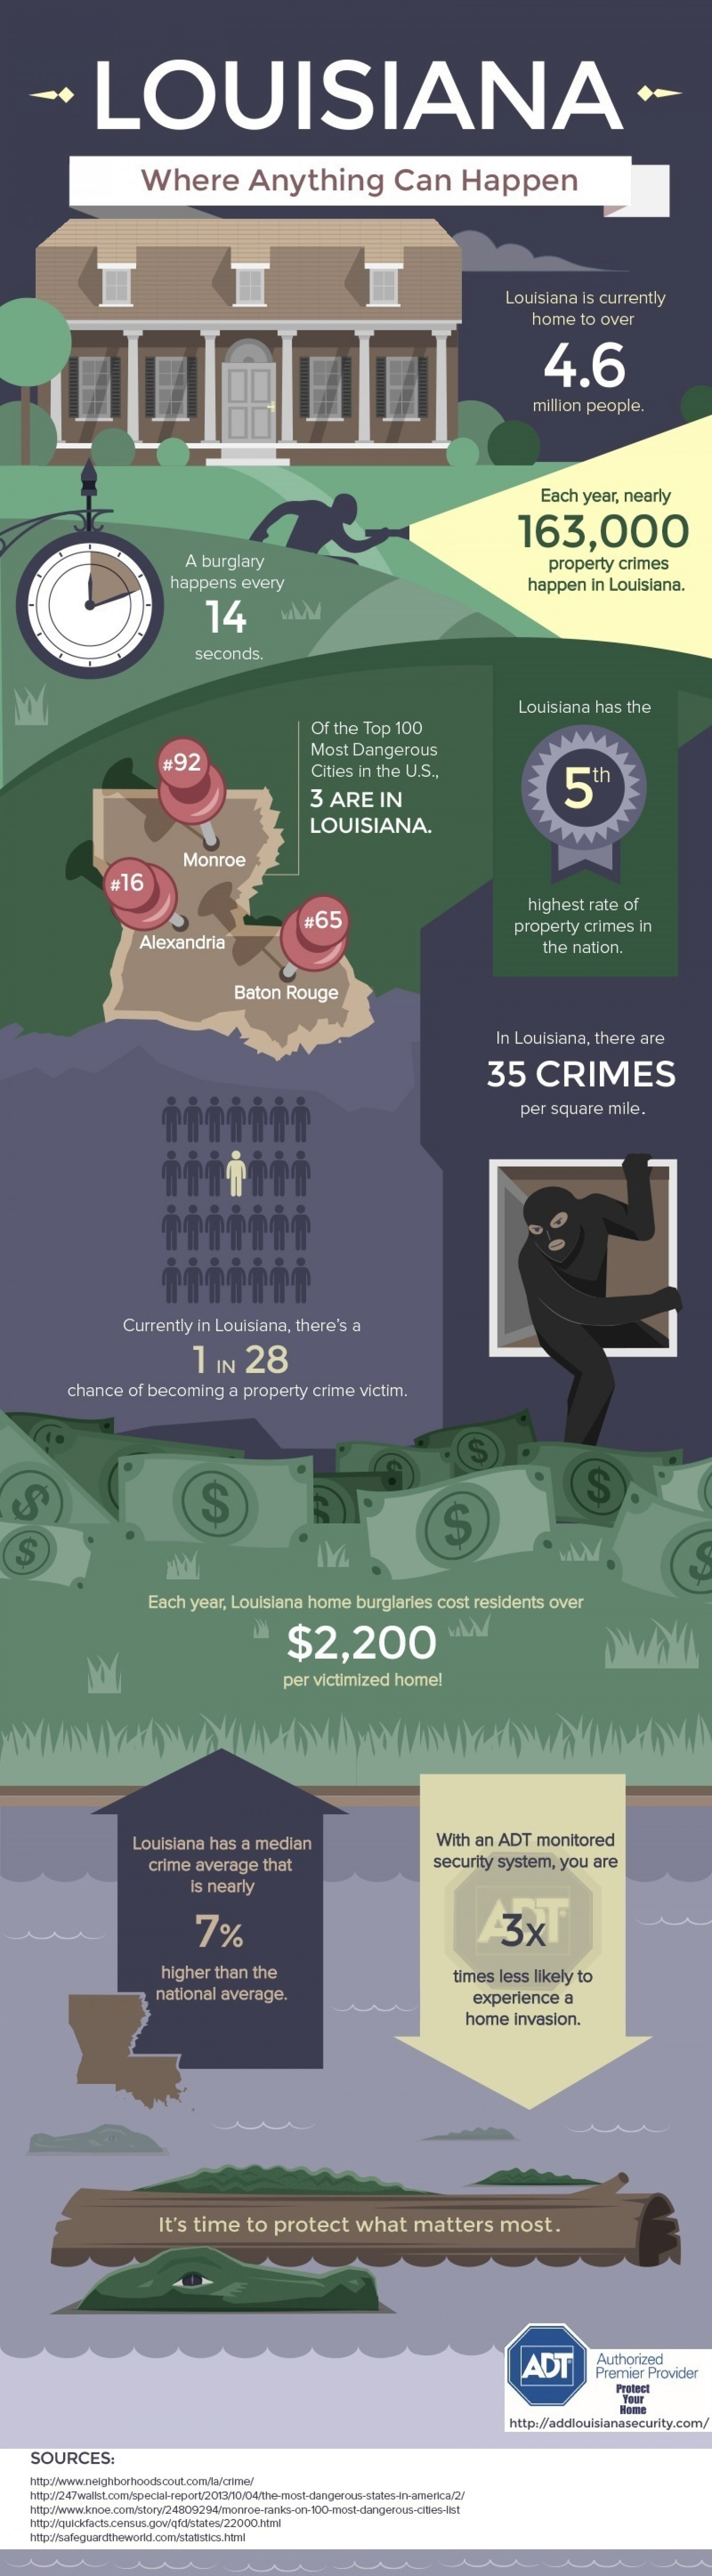 Louisiana- Where Anything Can Happen Infographic